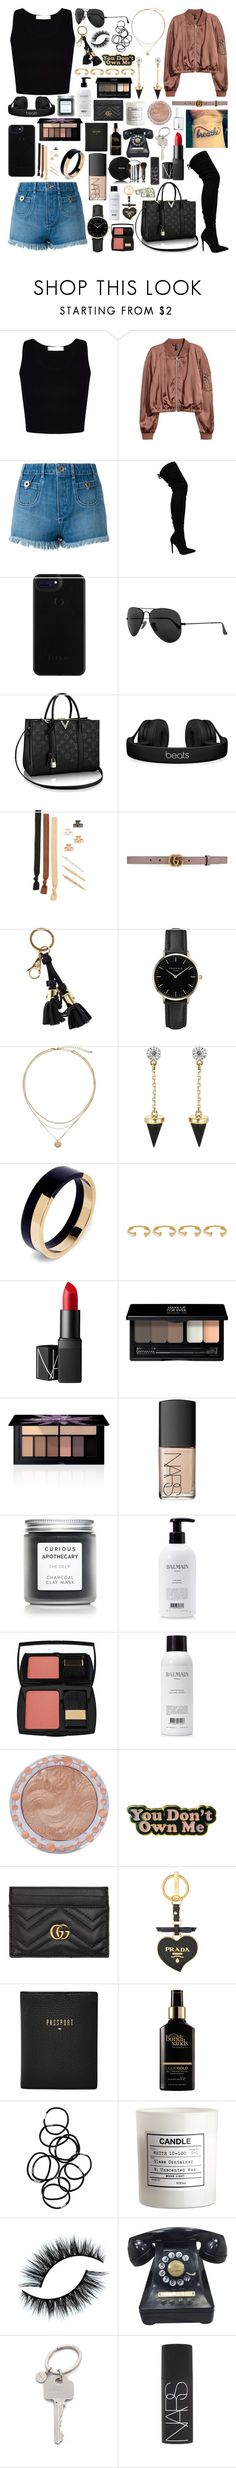 """The Weight"" by ebz127 ❤ liked on Polyvore featuring H&M, Chloé, Ray-Ban, Beats by Dr. Dre, Kitsch, Gucci, Dolce&Gabbana, ROSEFIELD, Brixton and Marni"